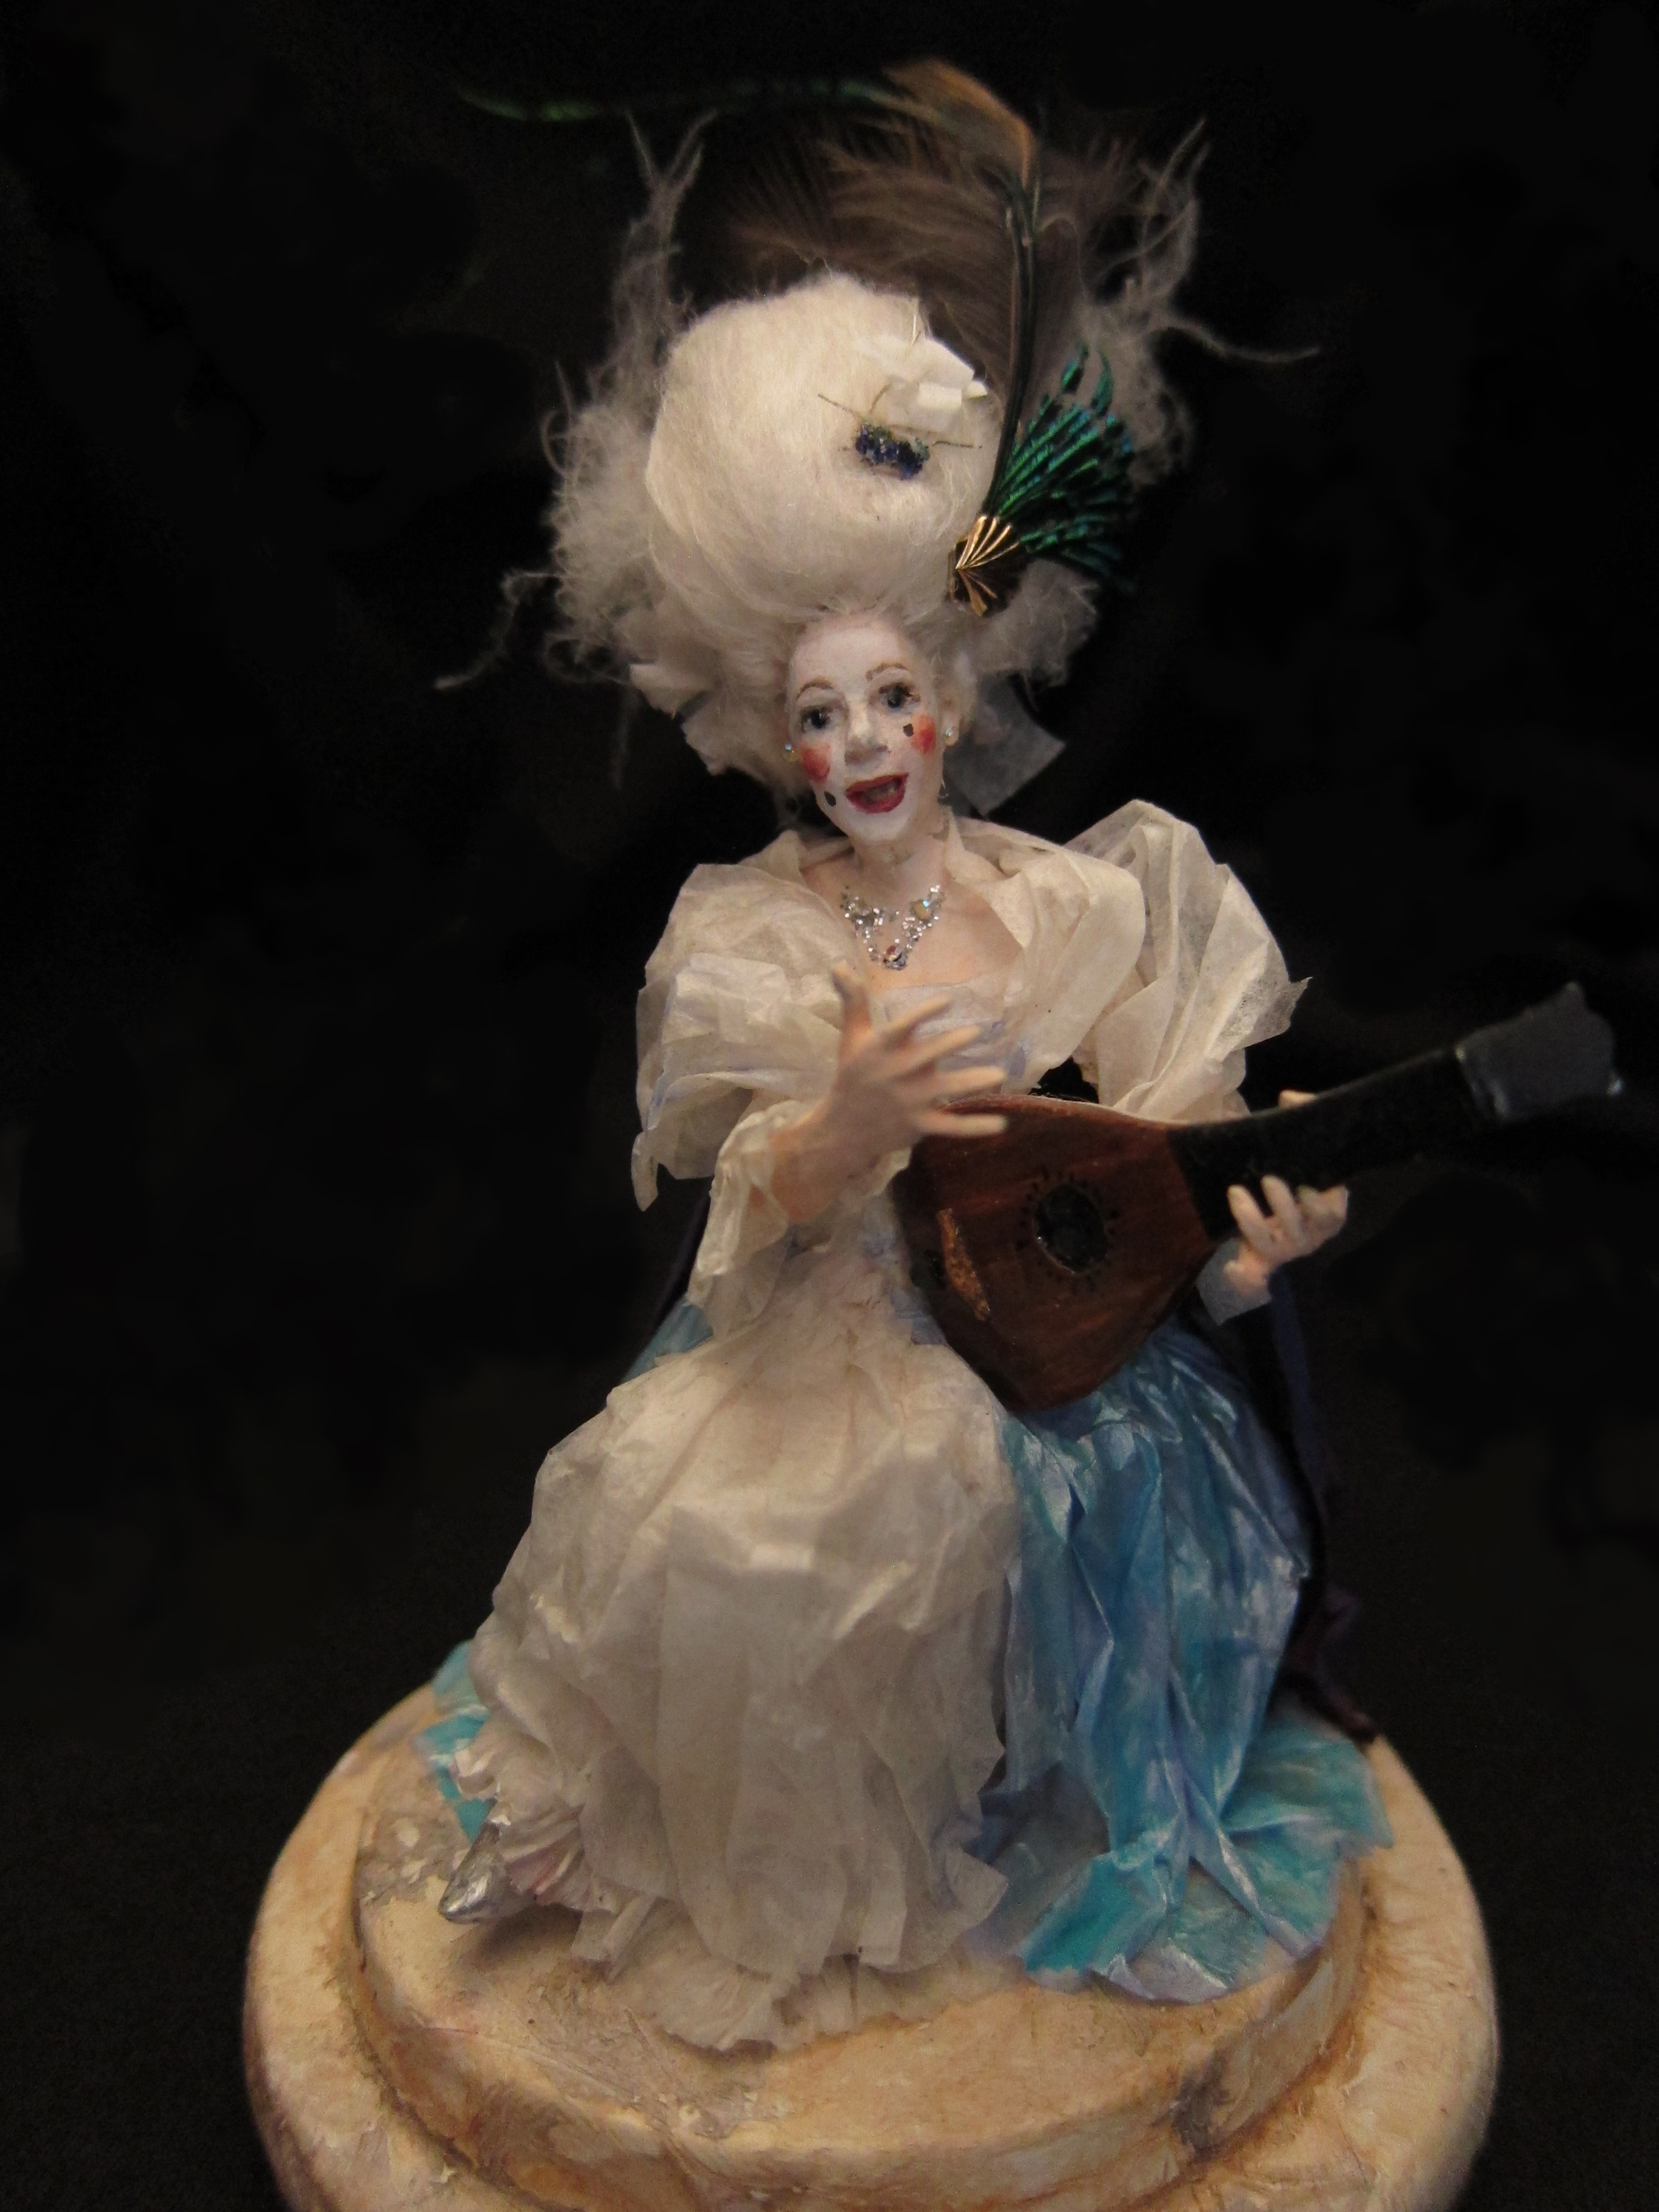 The Merry Musician